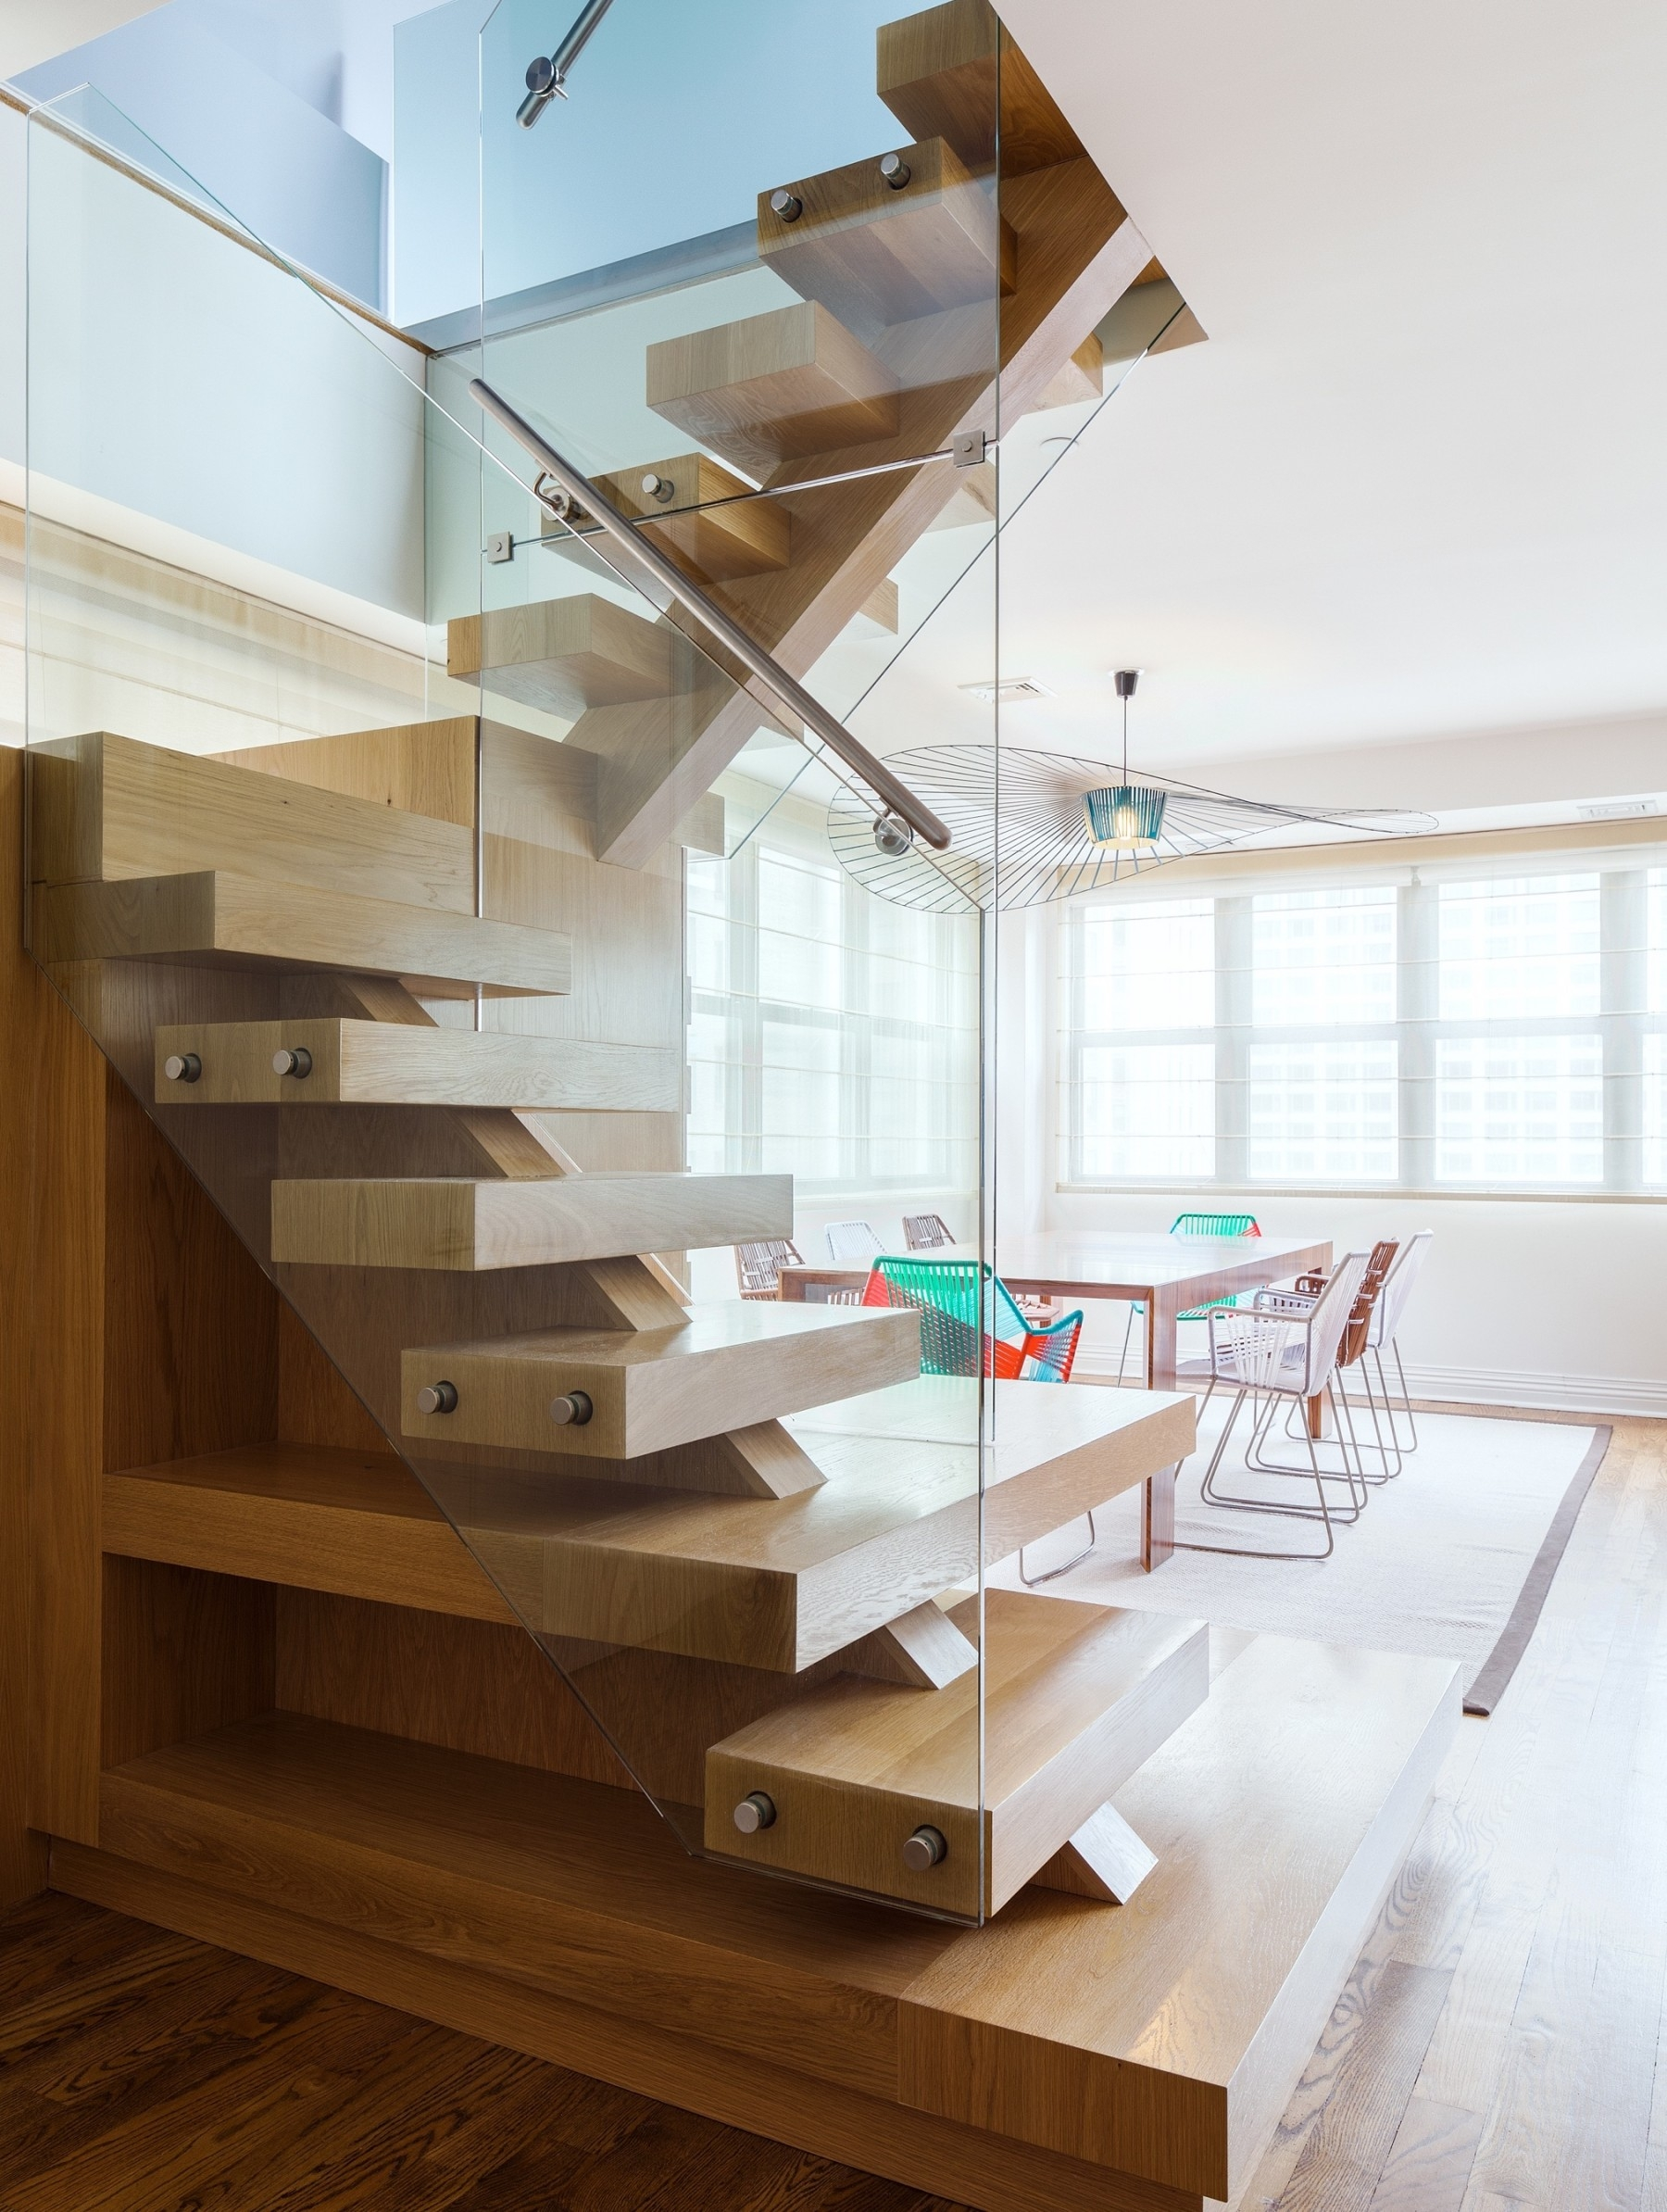 Spiral Staircase Alternatives For Your Nyc Duplex Renovation | Duplex Stairs Wall Design | Middle Room Interior Design | Attractive | Staircase Wall Panel | Living Room Layout | Bungalow Duplex Indian